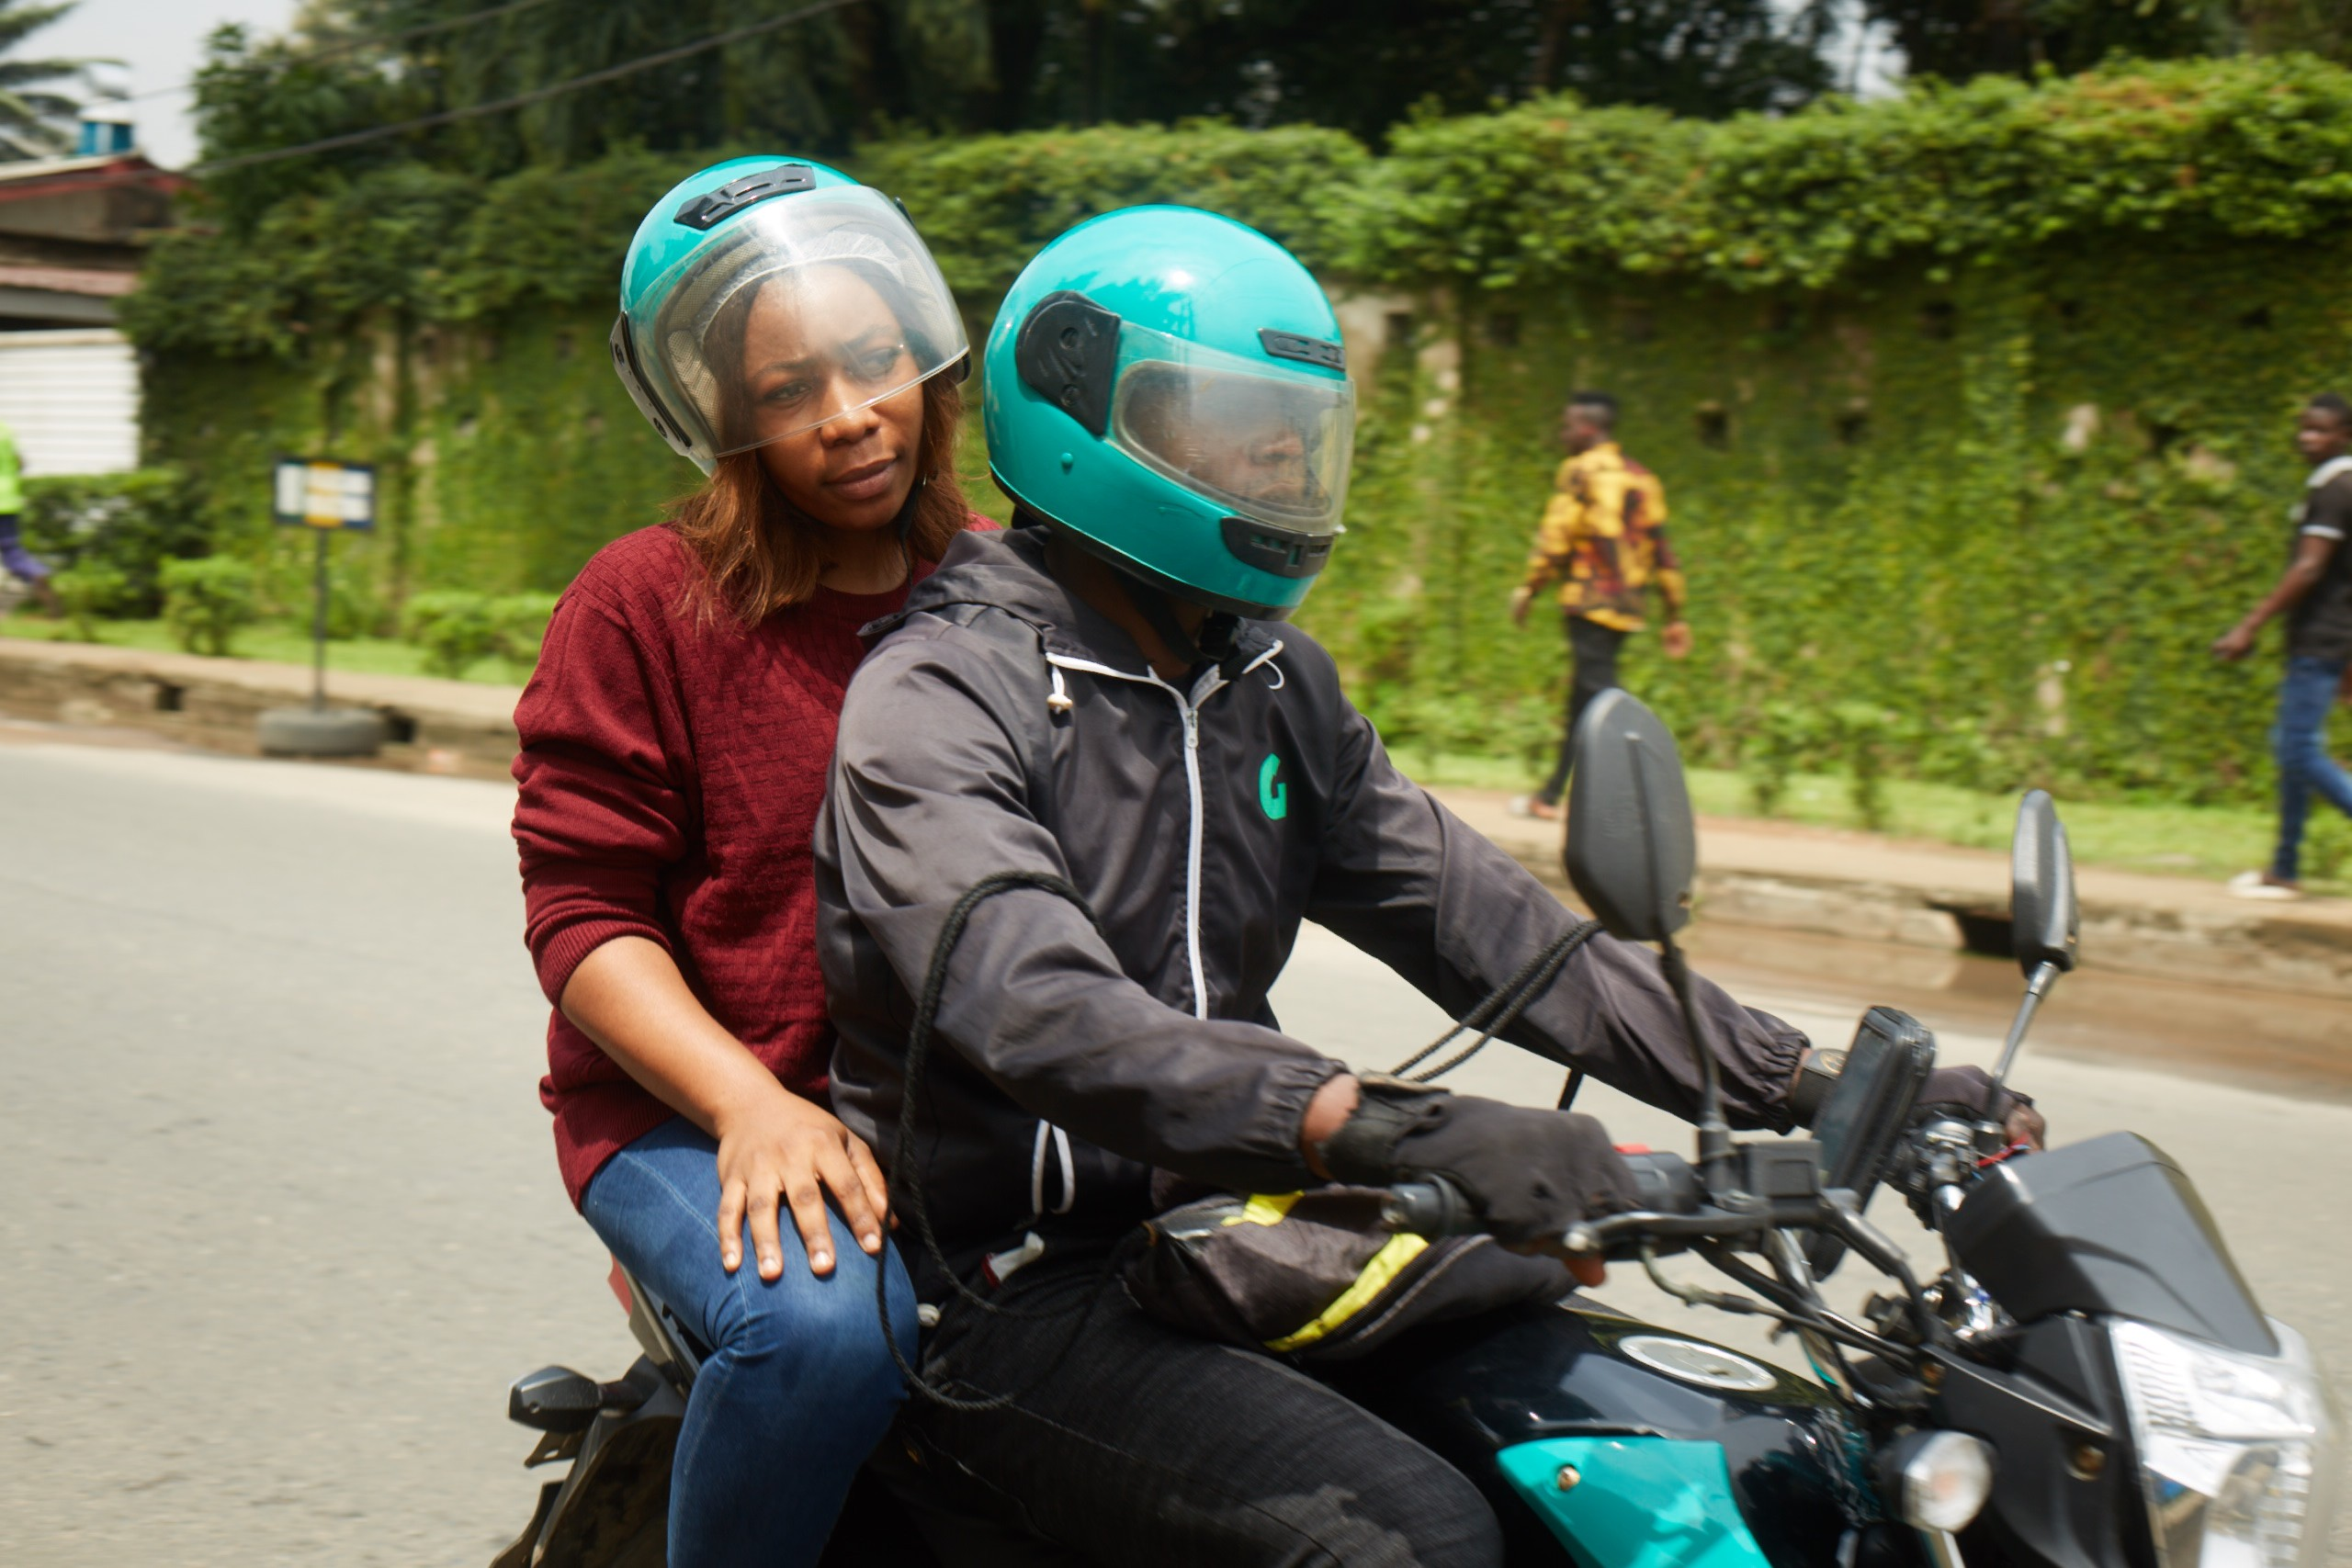 Gokada: The Smart And Safe Way To Avoid Traffic In Lagos